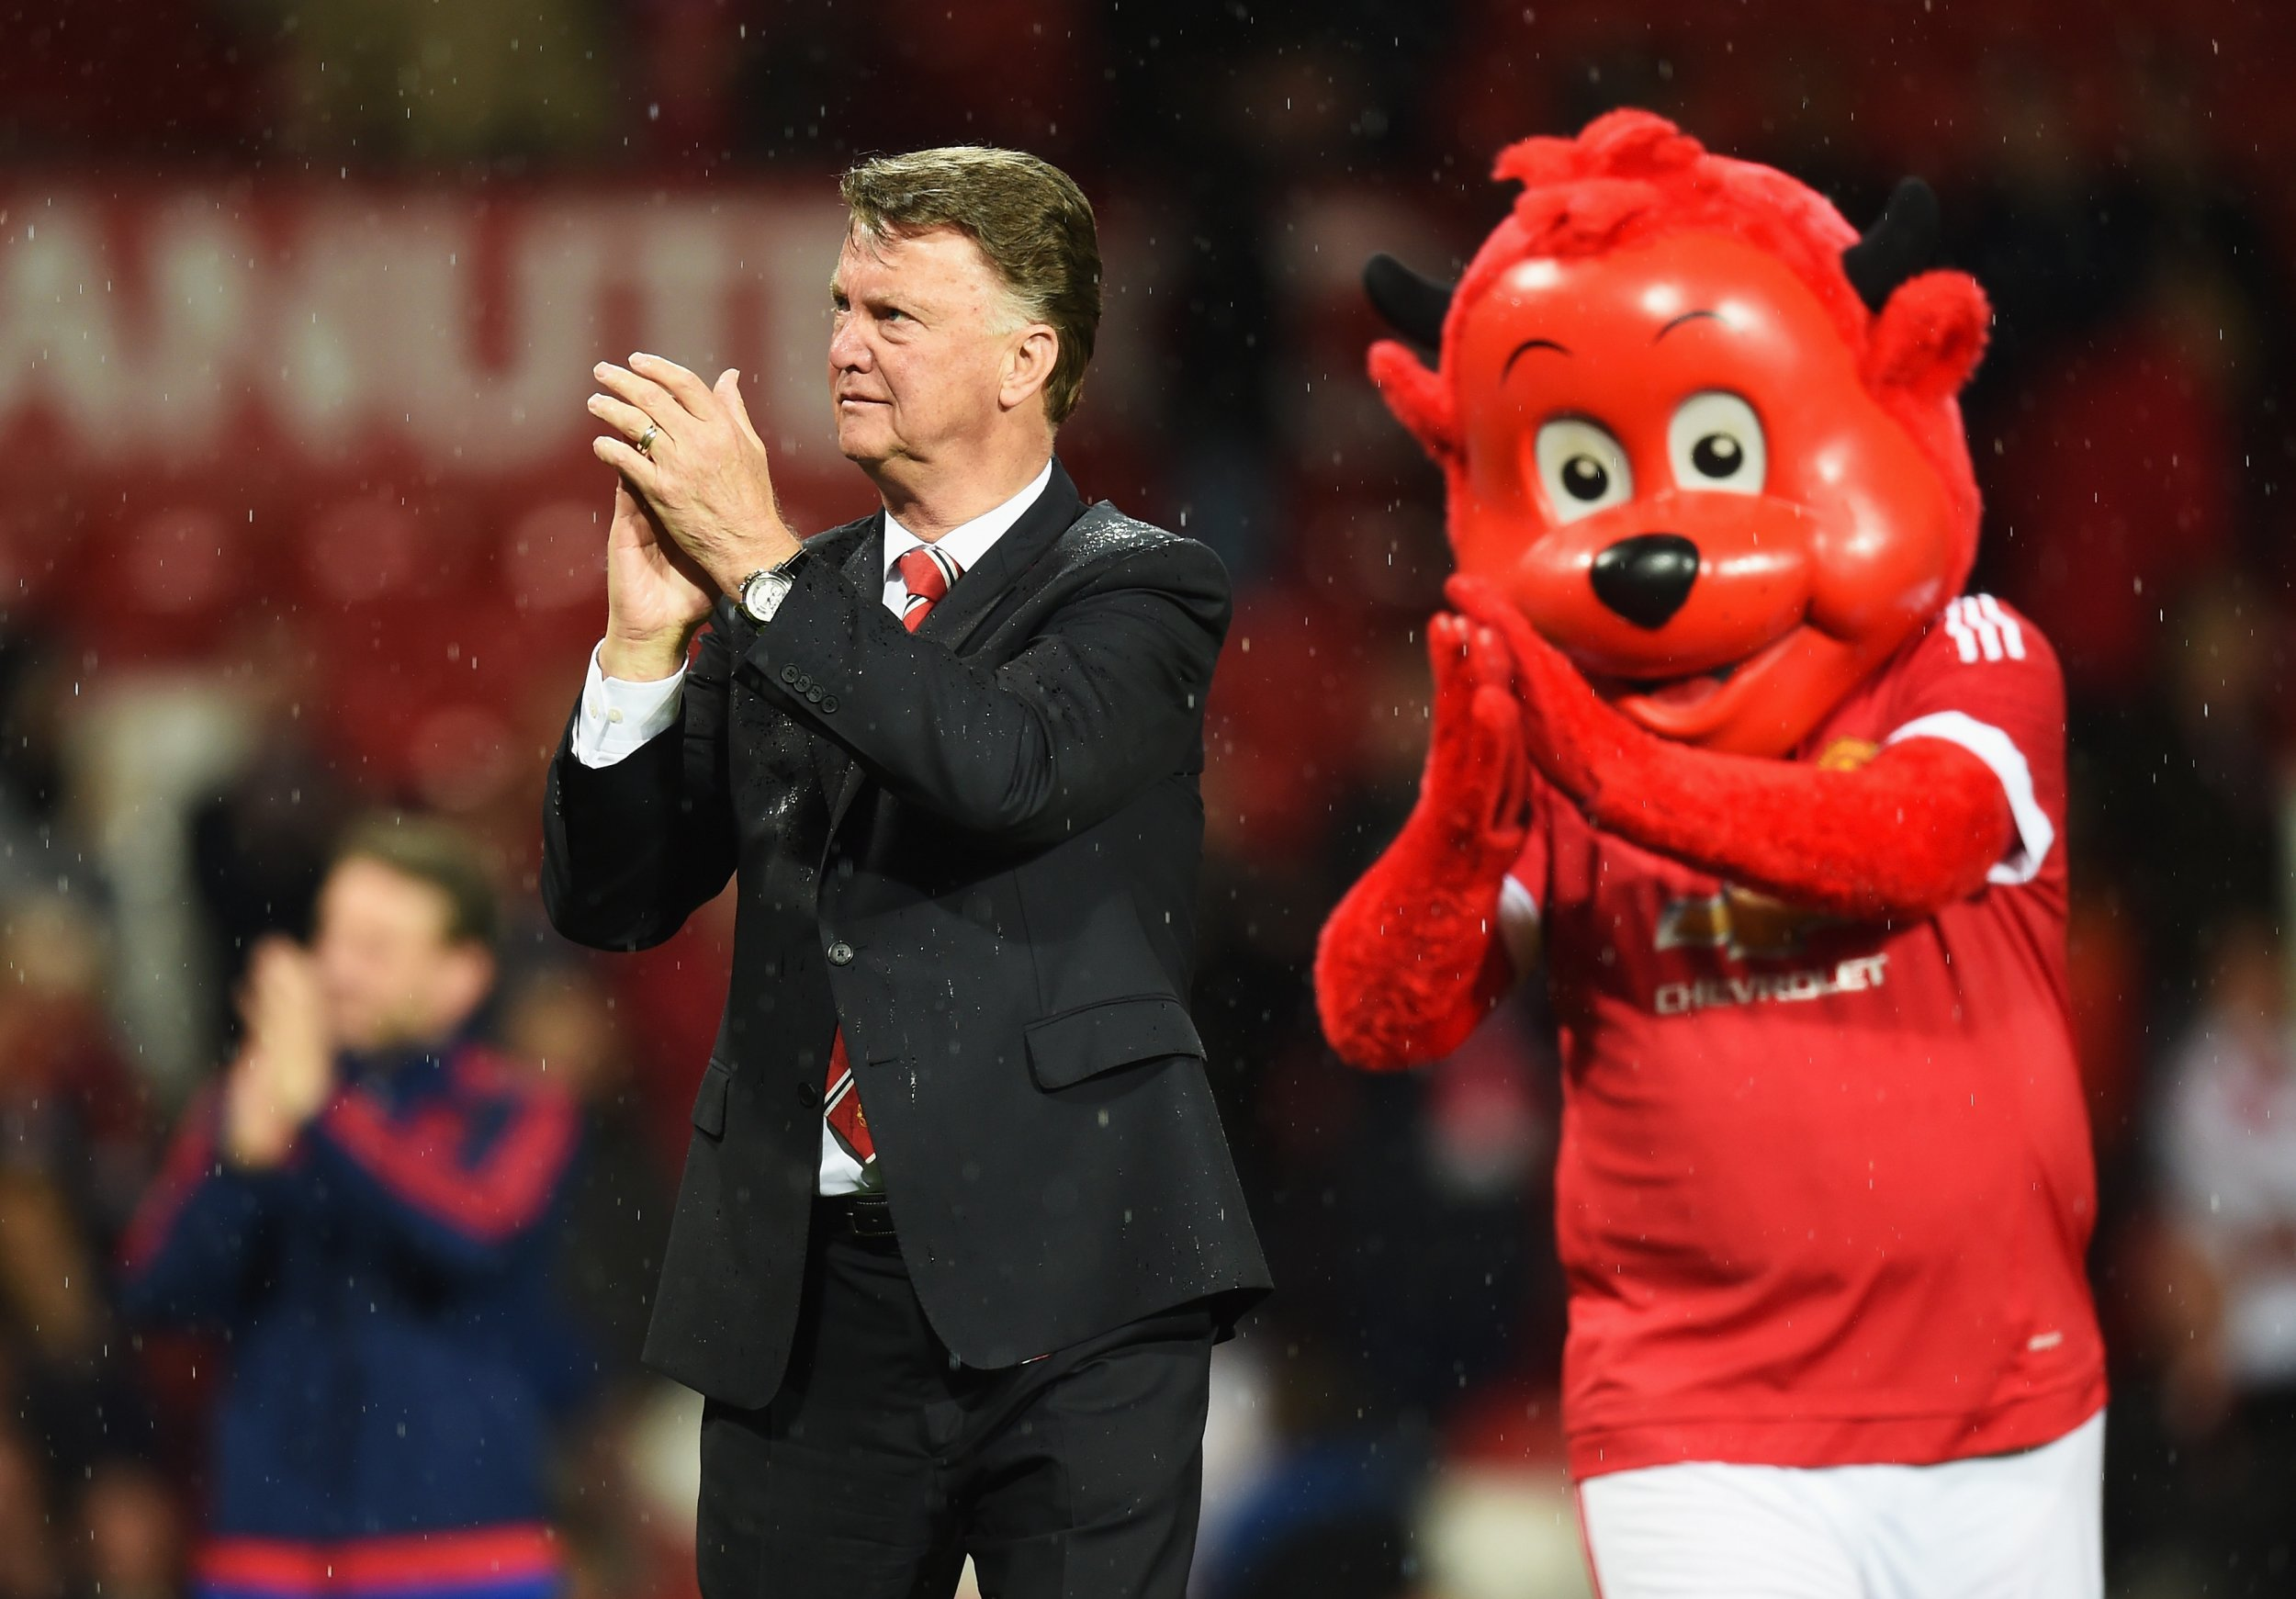 Manchester United manager Louis Van Gaal, left, with the club mascot Fred the Red.